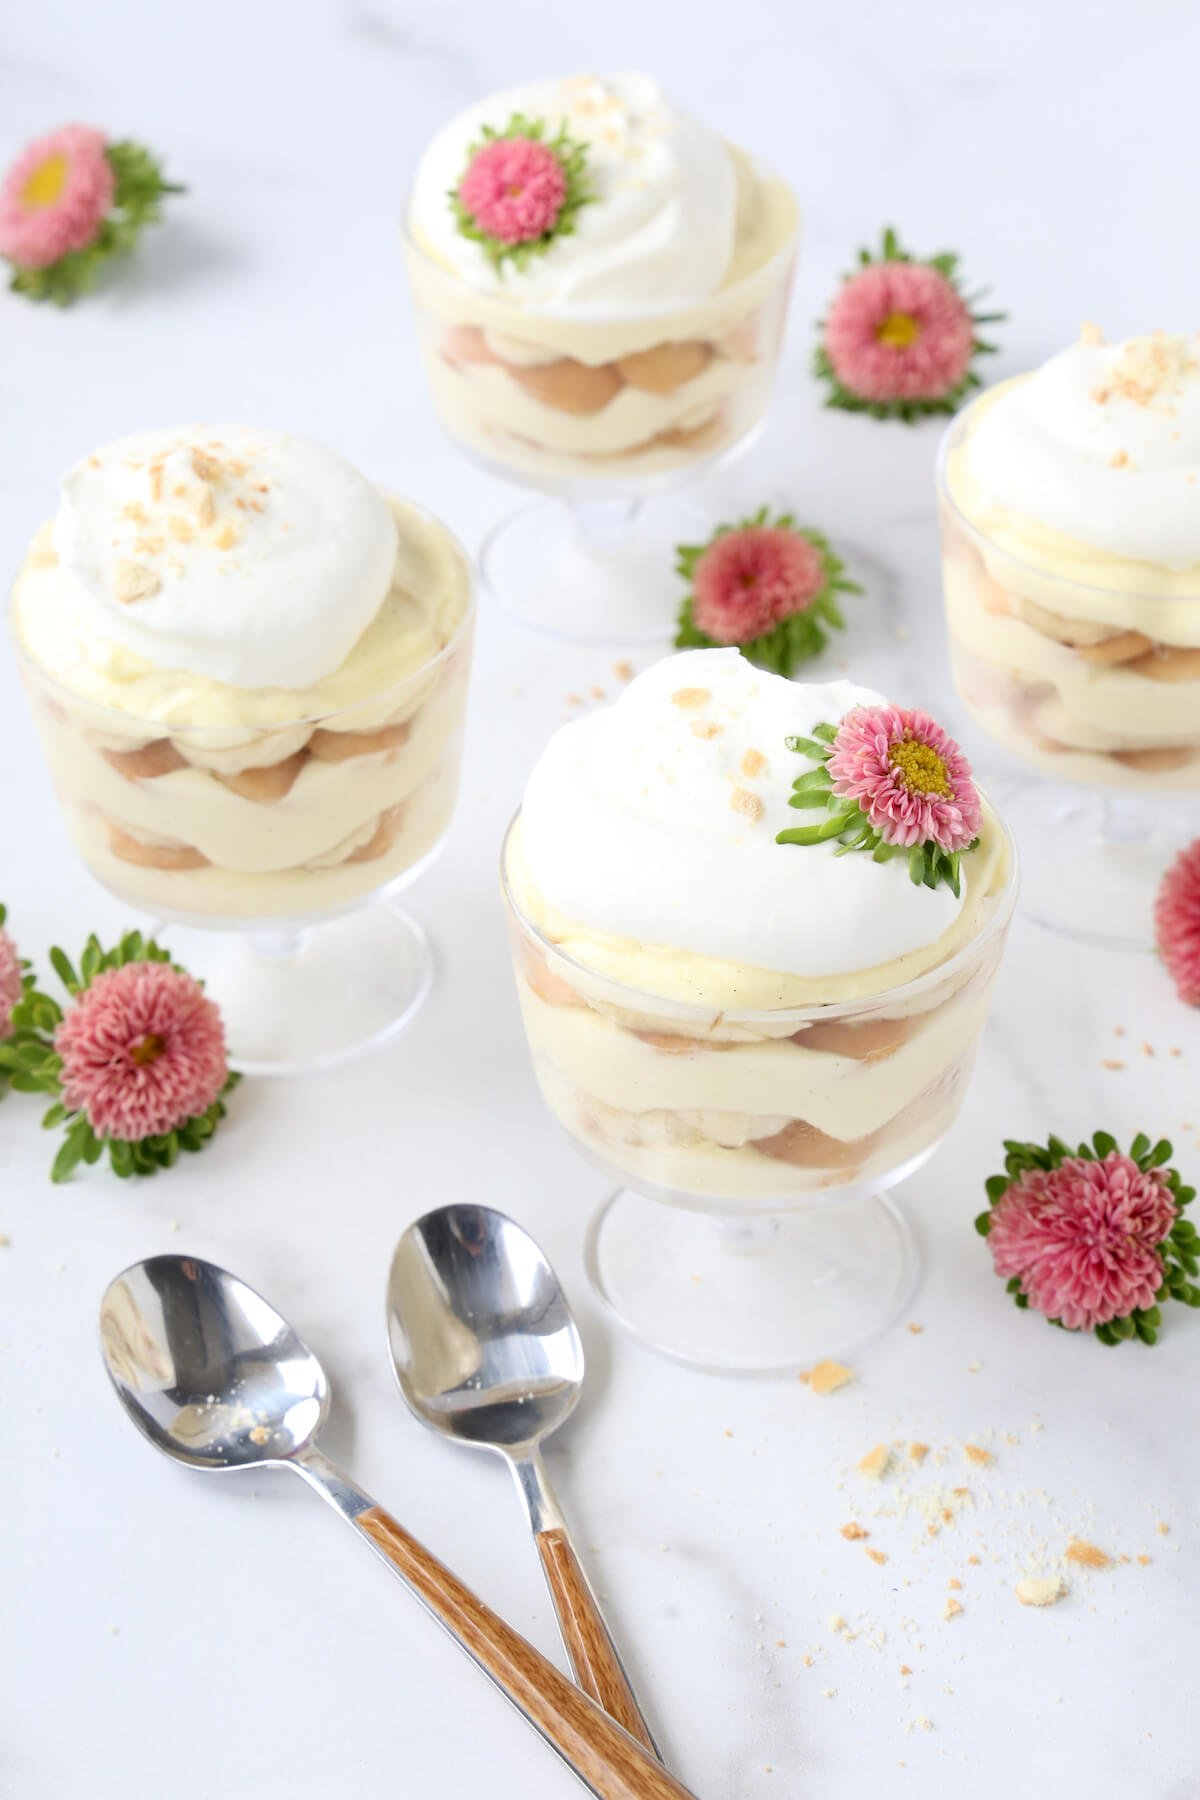 four trifle bowls with layers of vanilla pudding, wafers and bananas next to flowers and two spoons.